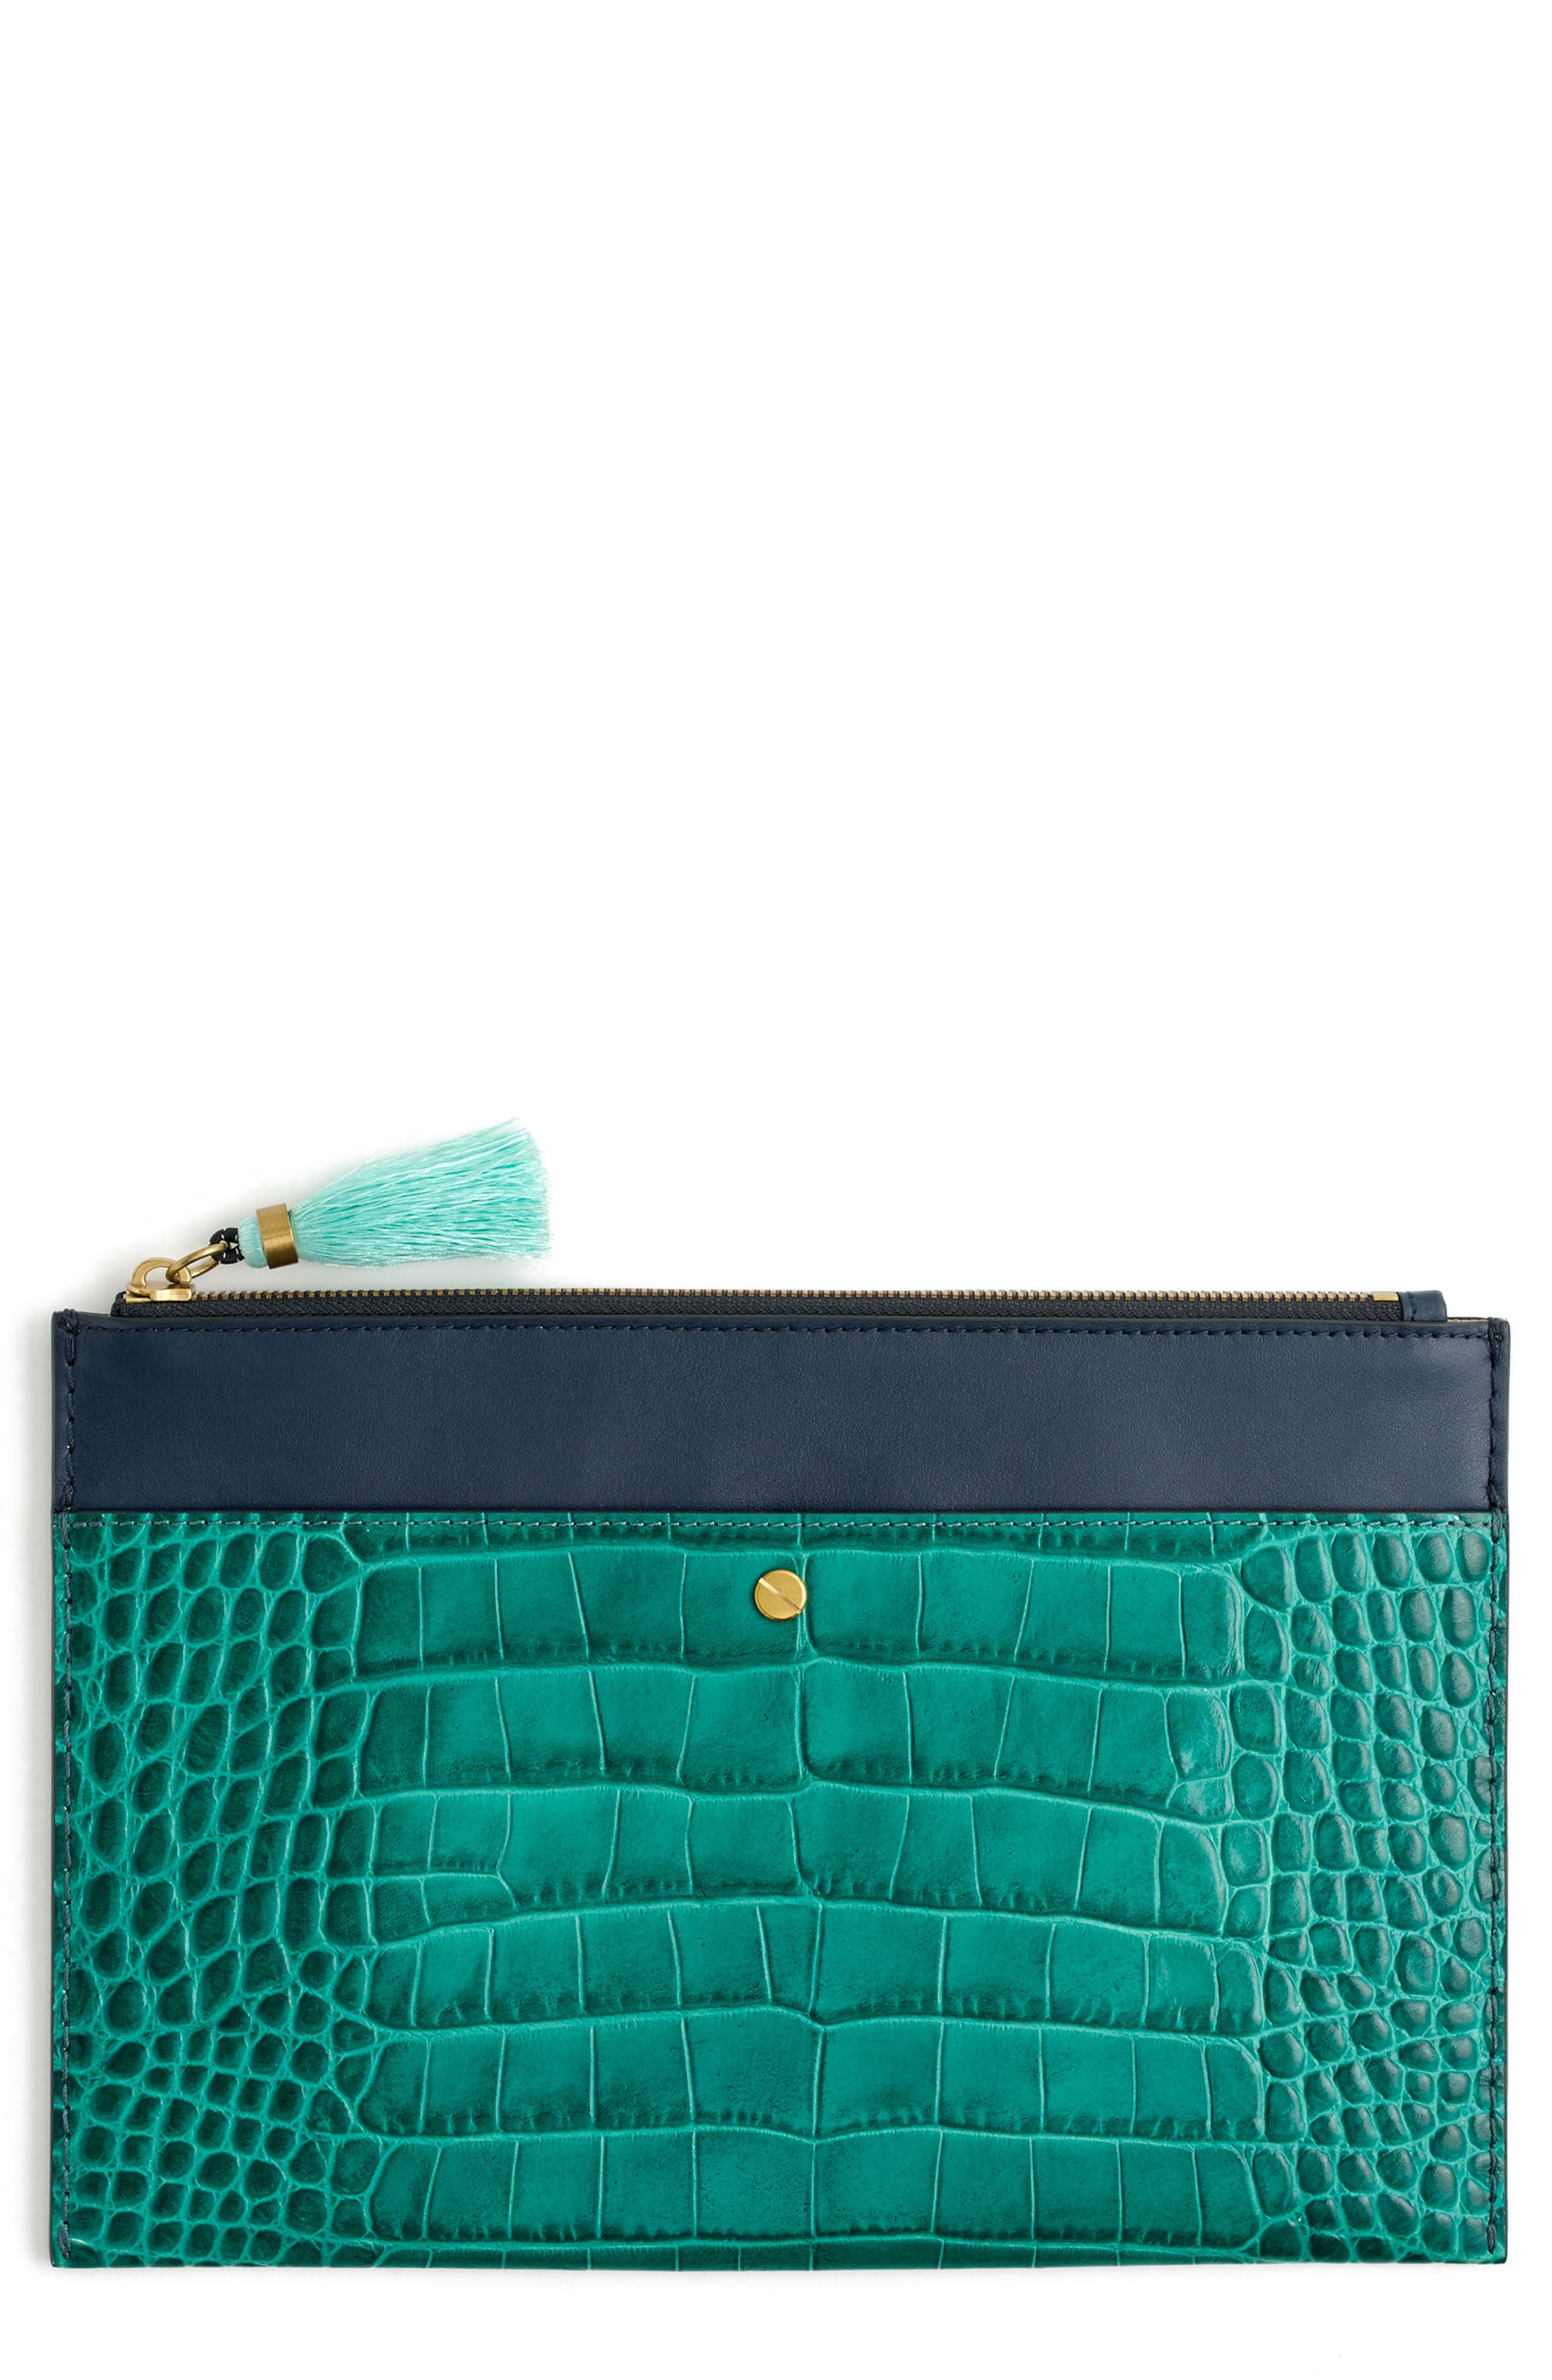 J.Crew Large Stamped Croc Leather Pouch,                         Main,                         color, Peacock Blue